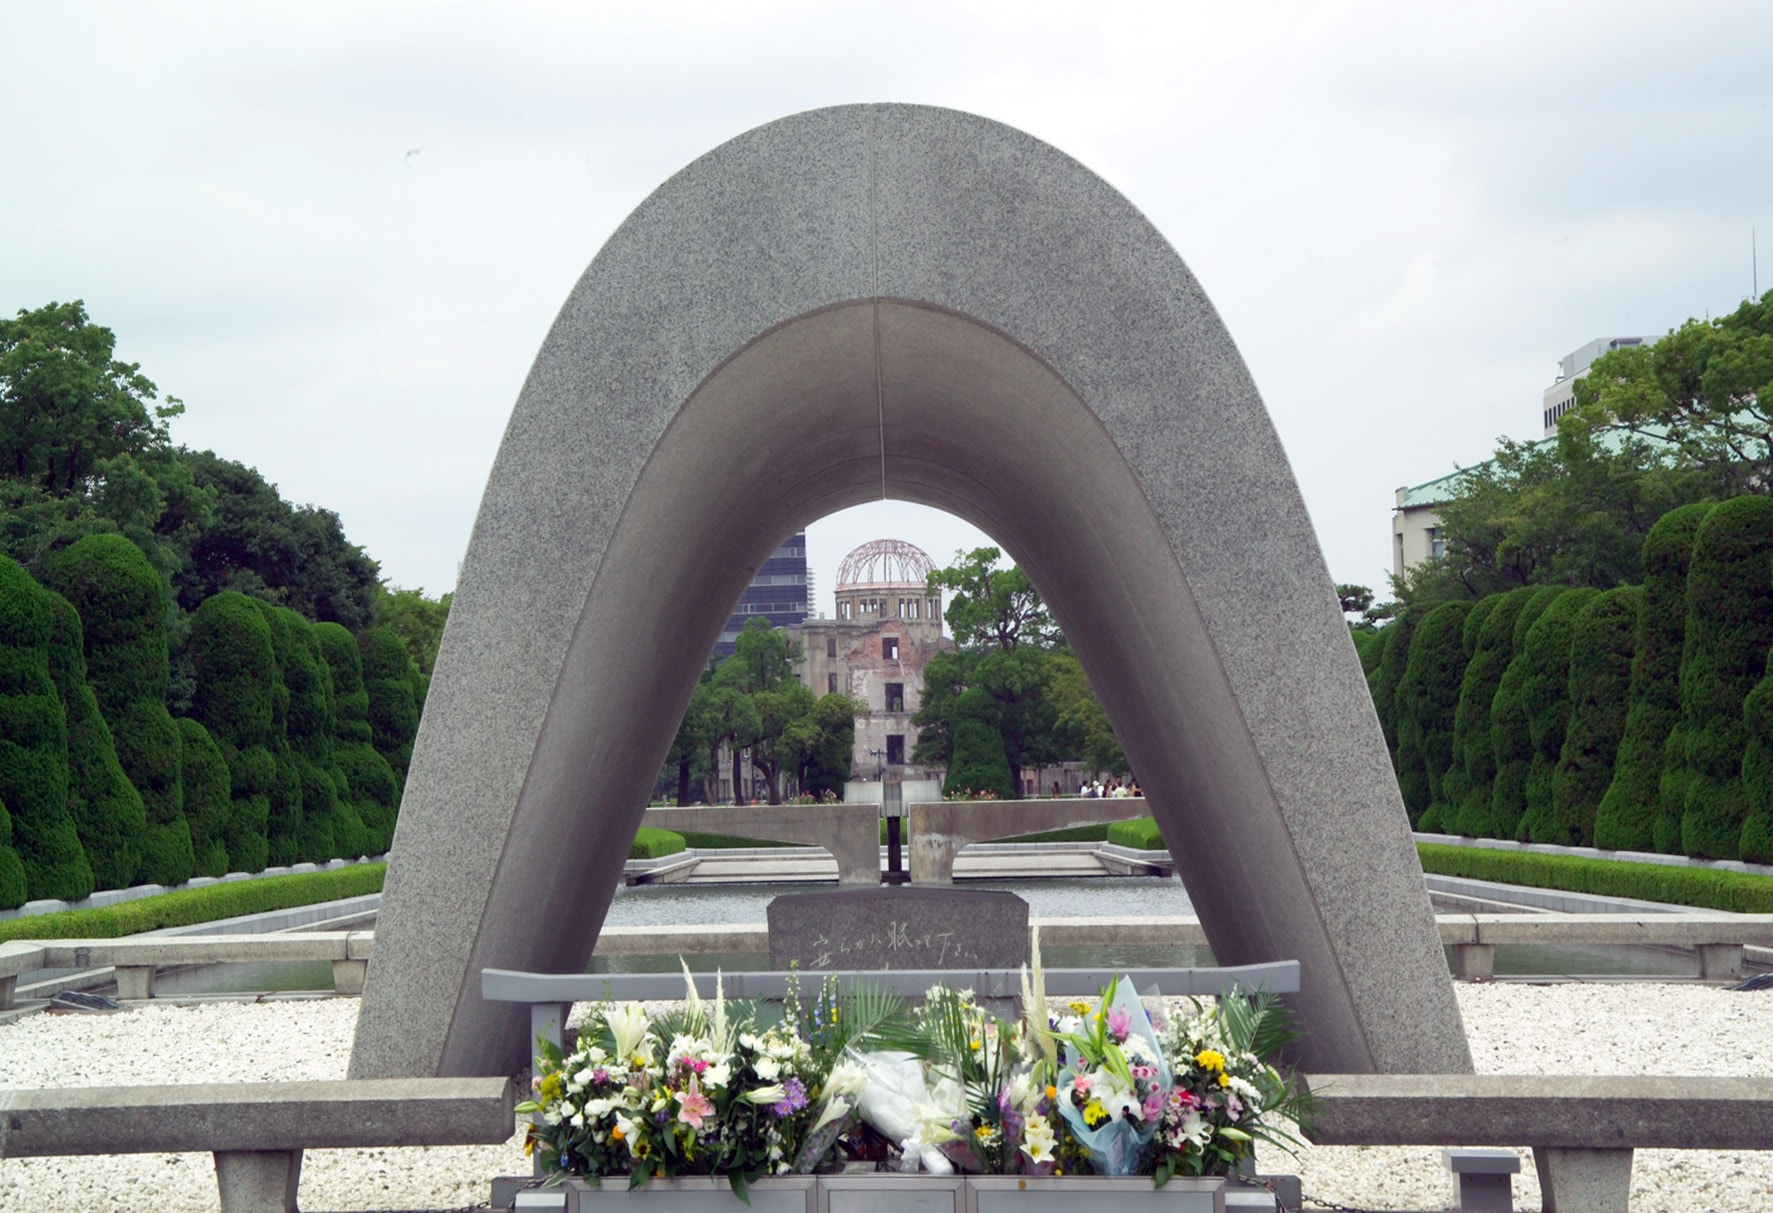 Hiroshima is one of the best places to visit in Japan